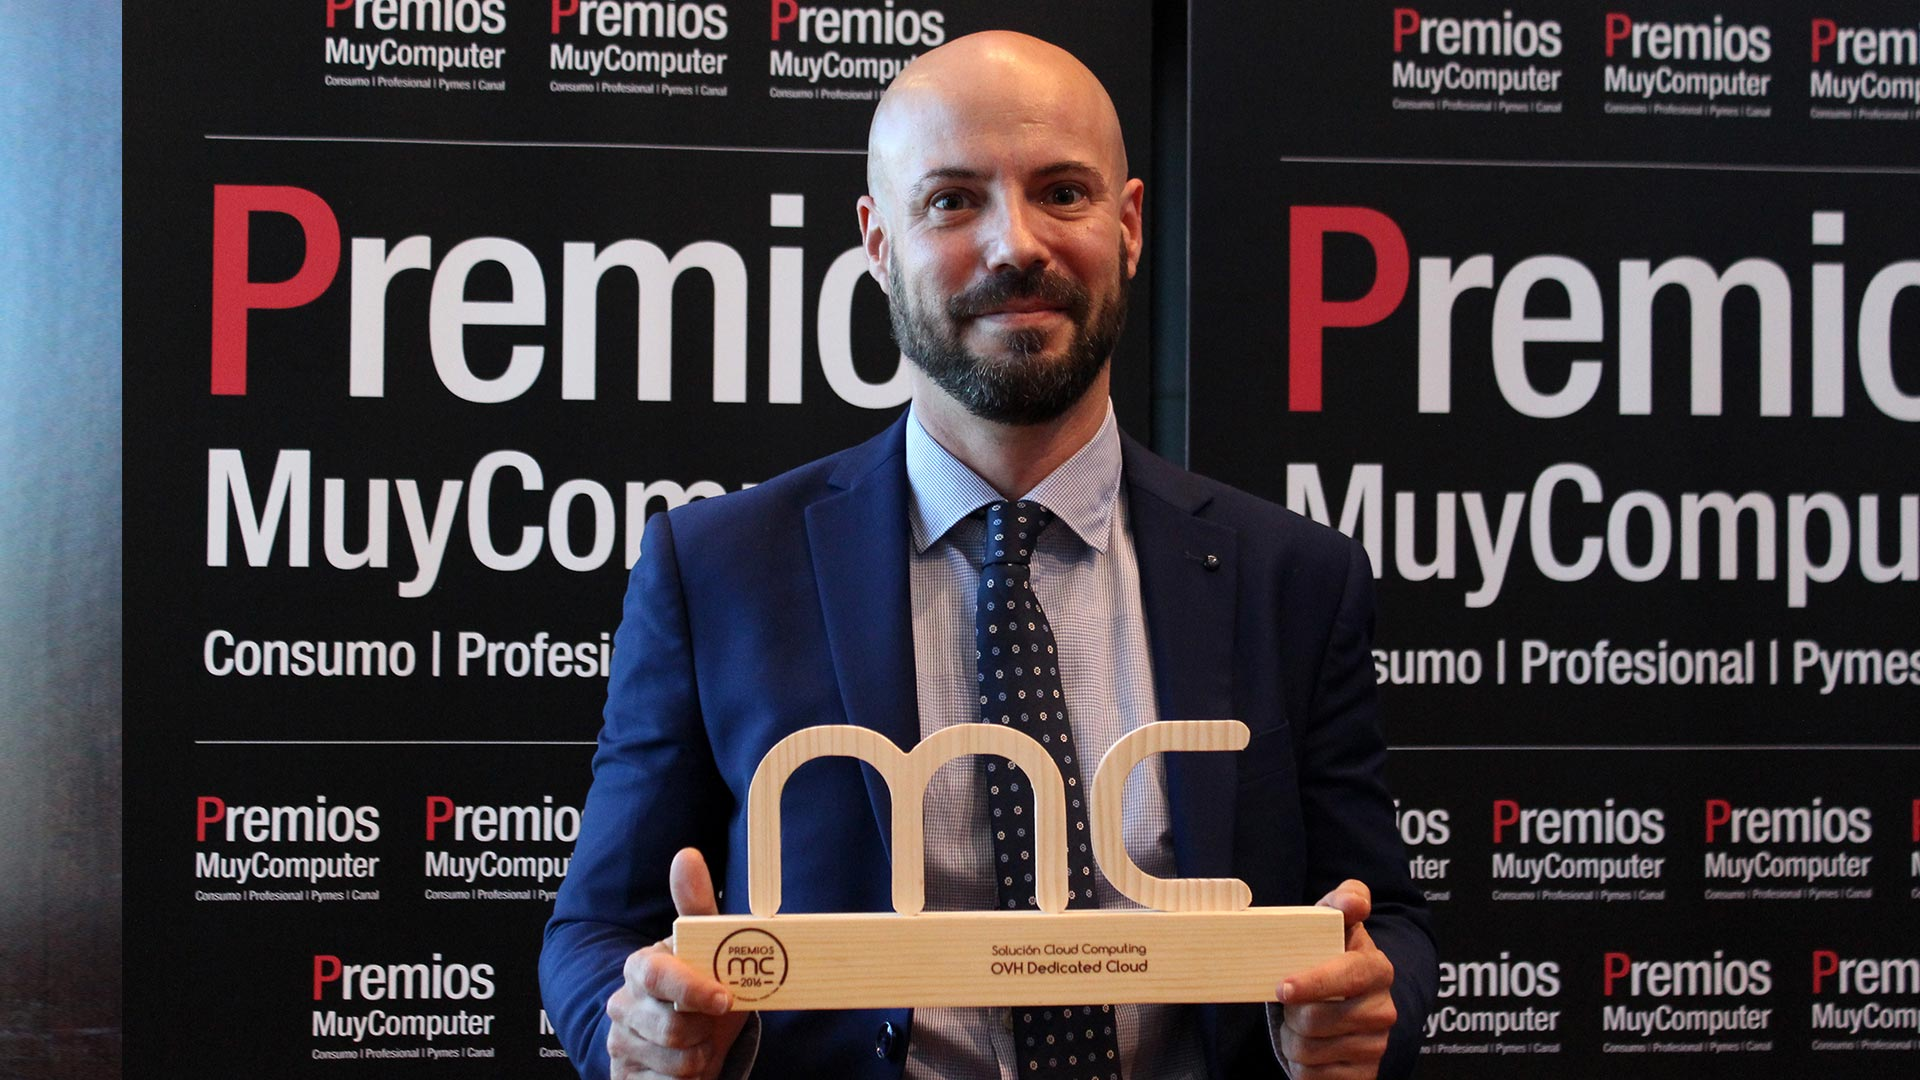 premiosmc2016-solucion-cloud-computing-ovh-dedicated-cloud